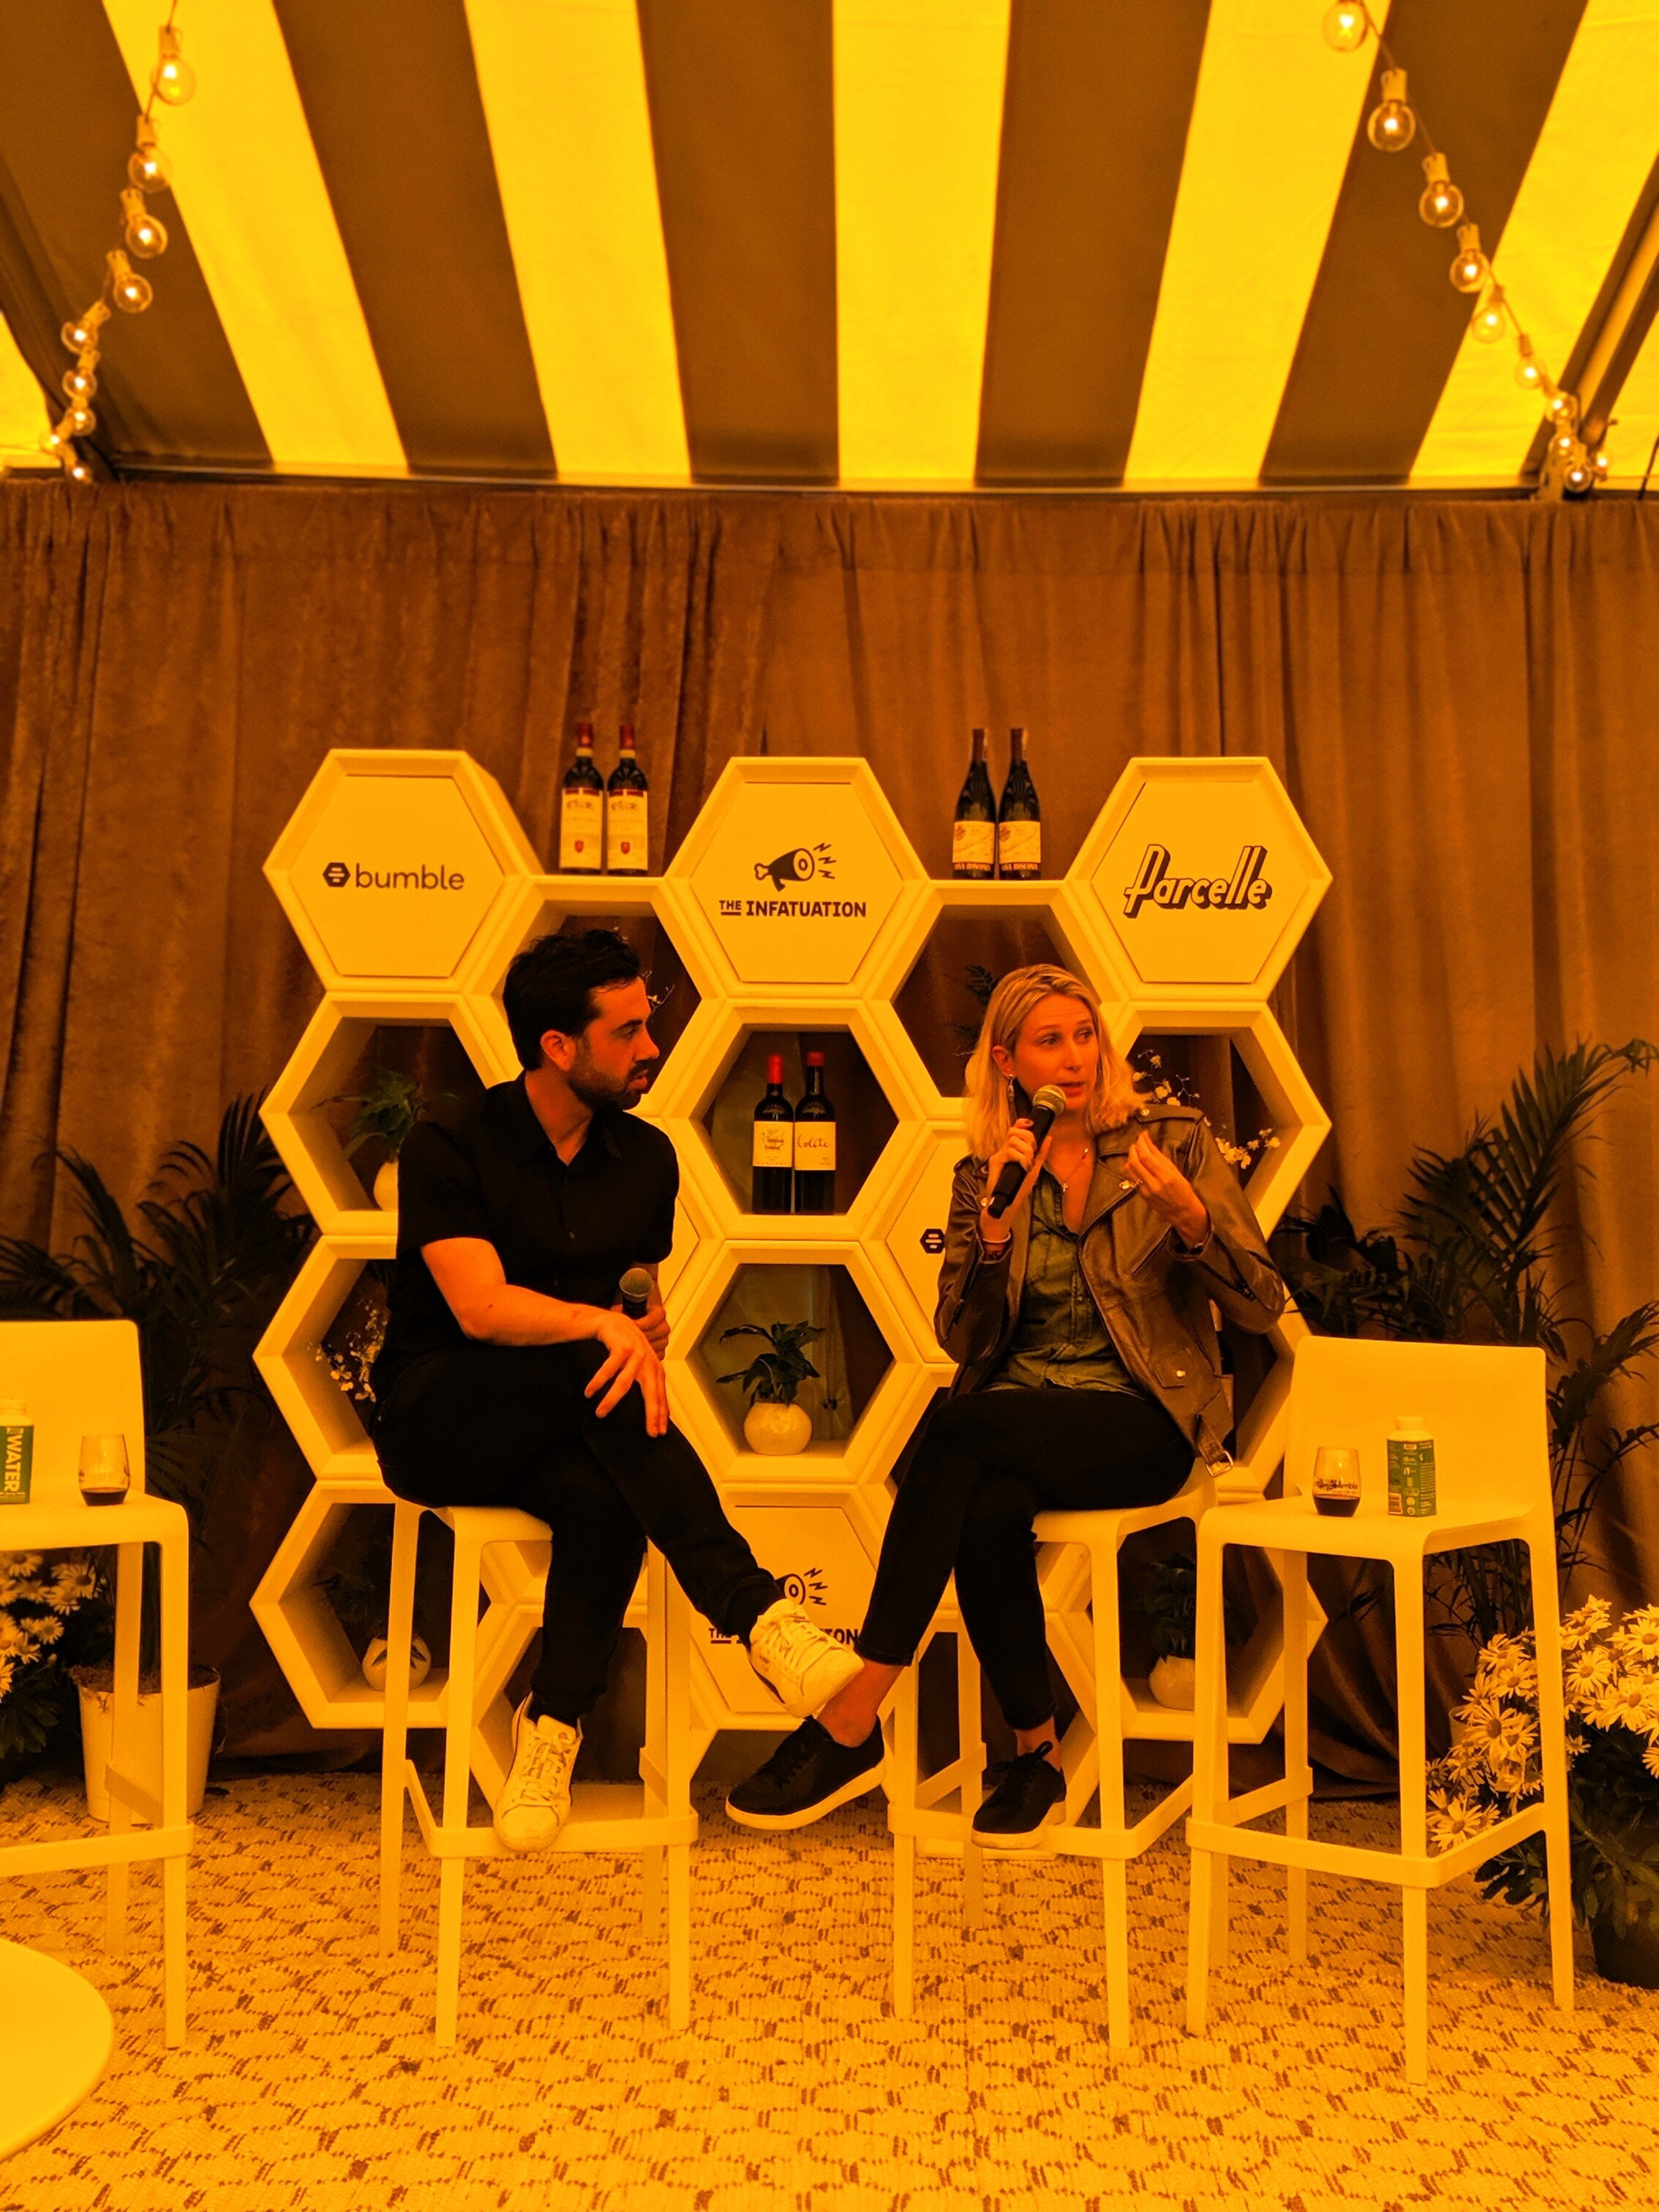 Marie Vayron  (right) in conversation with  Grant Reynolds  of Delicious Hospitality Group (the team behind restaurants like Charlie Bird and Pasquale Jones)